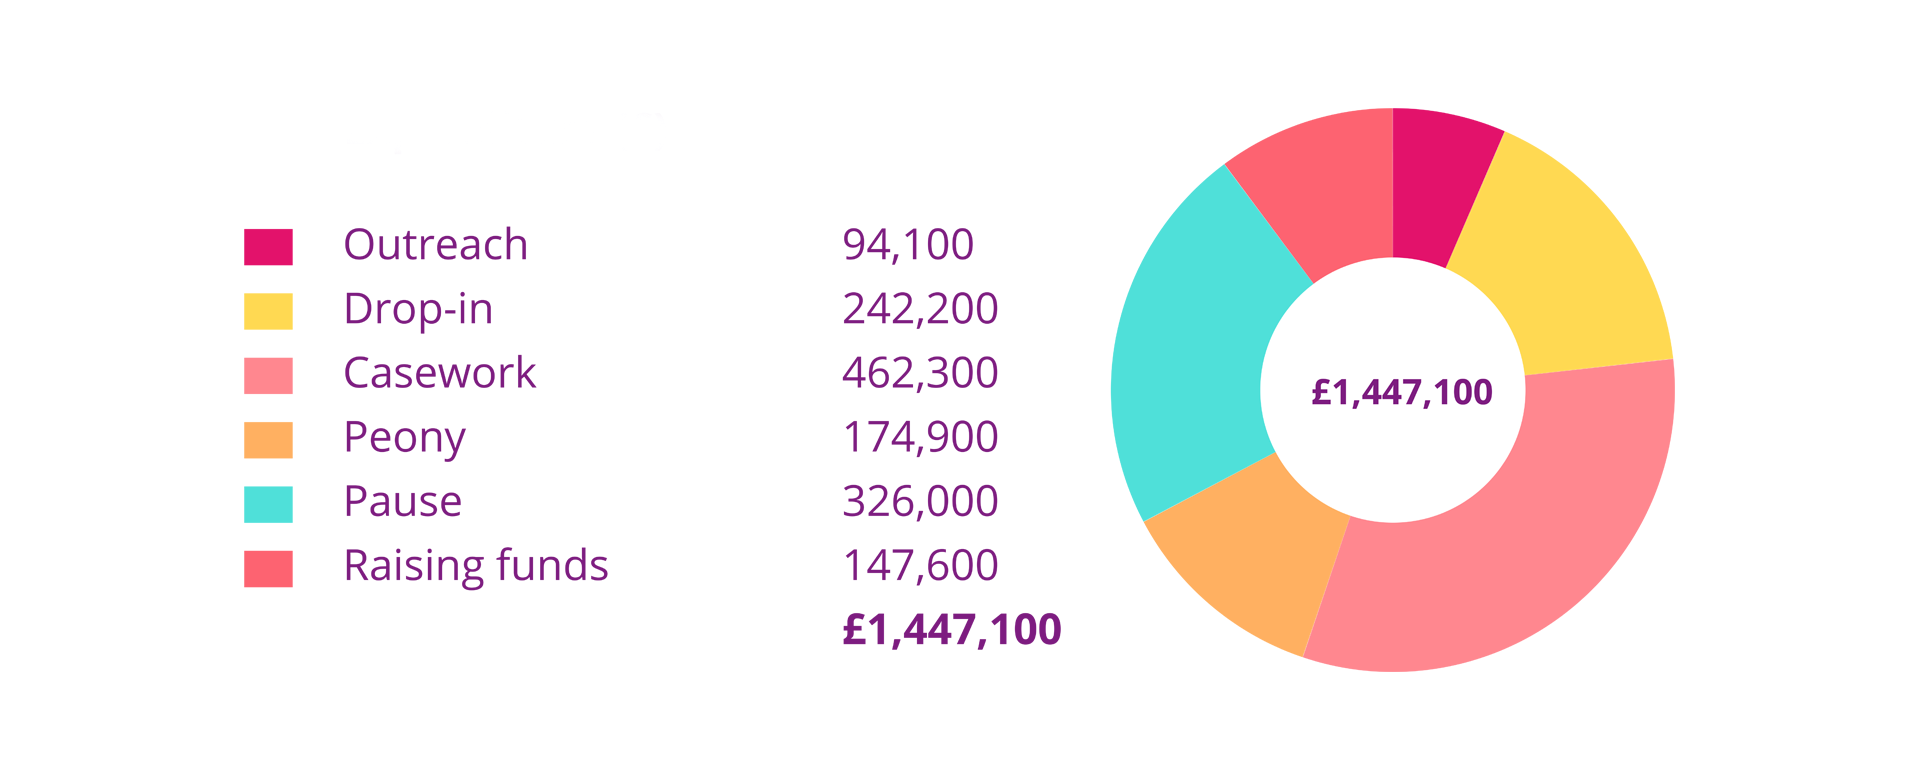 Outreach: £94,100, Drop-in: £242,200, Casework: £462,300, Peony: £174,900, Pause: £326,000, Raising funds: £147,600, Total: £1,447,100